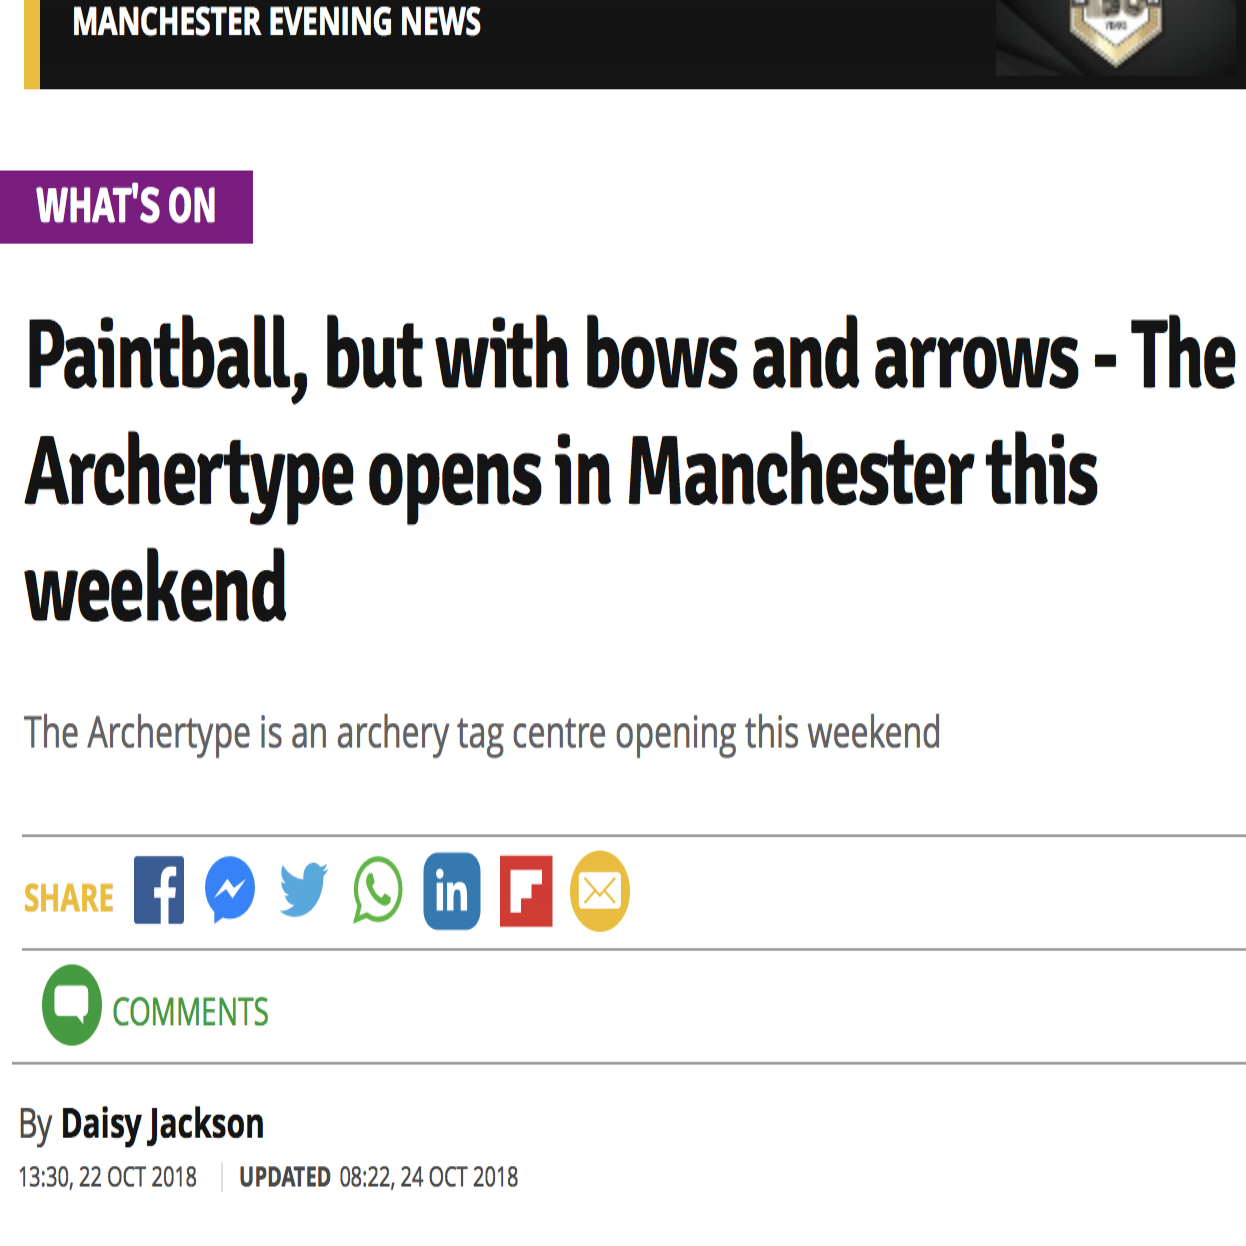 Manchester Evening News - Archery Tag Article Paintball but with bows and arrows.png